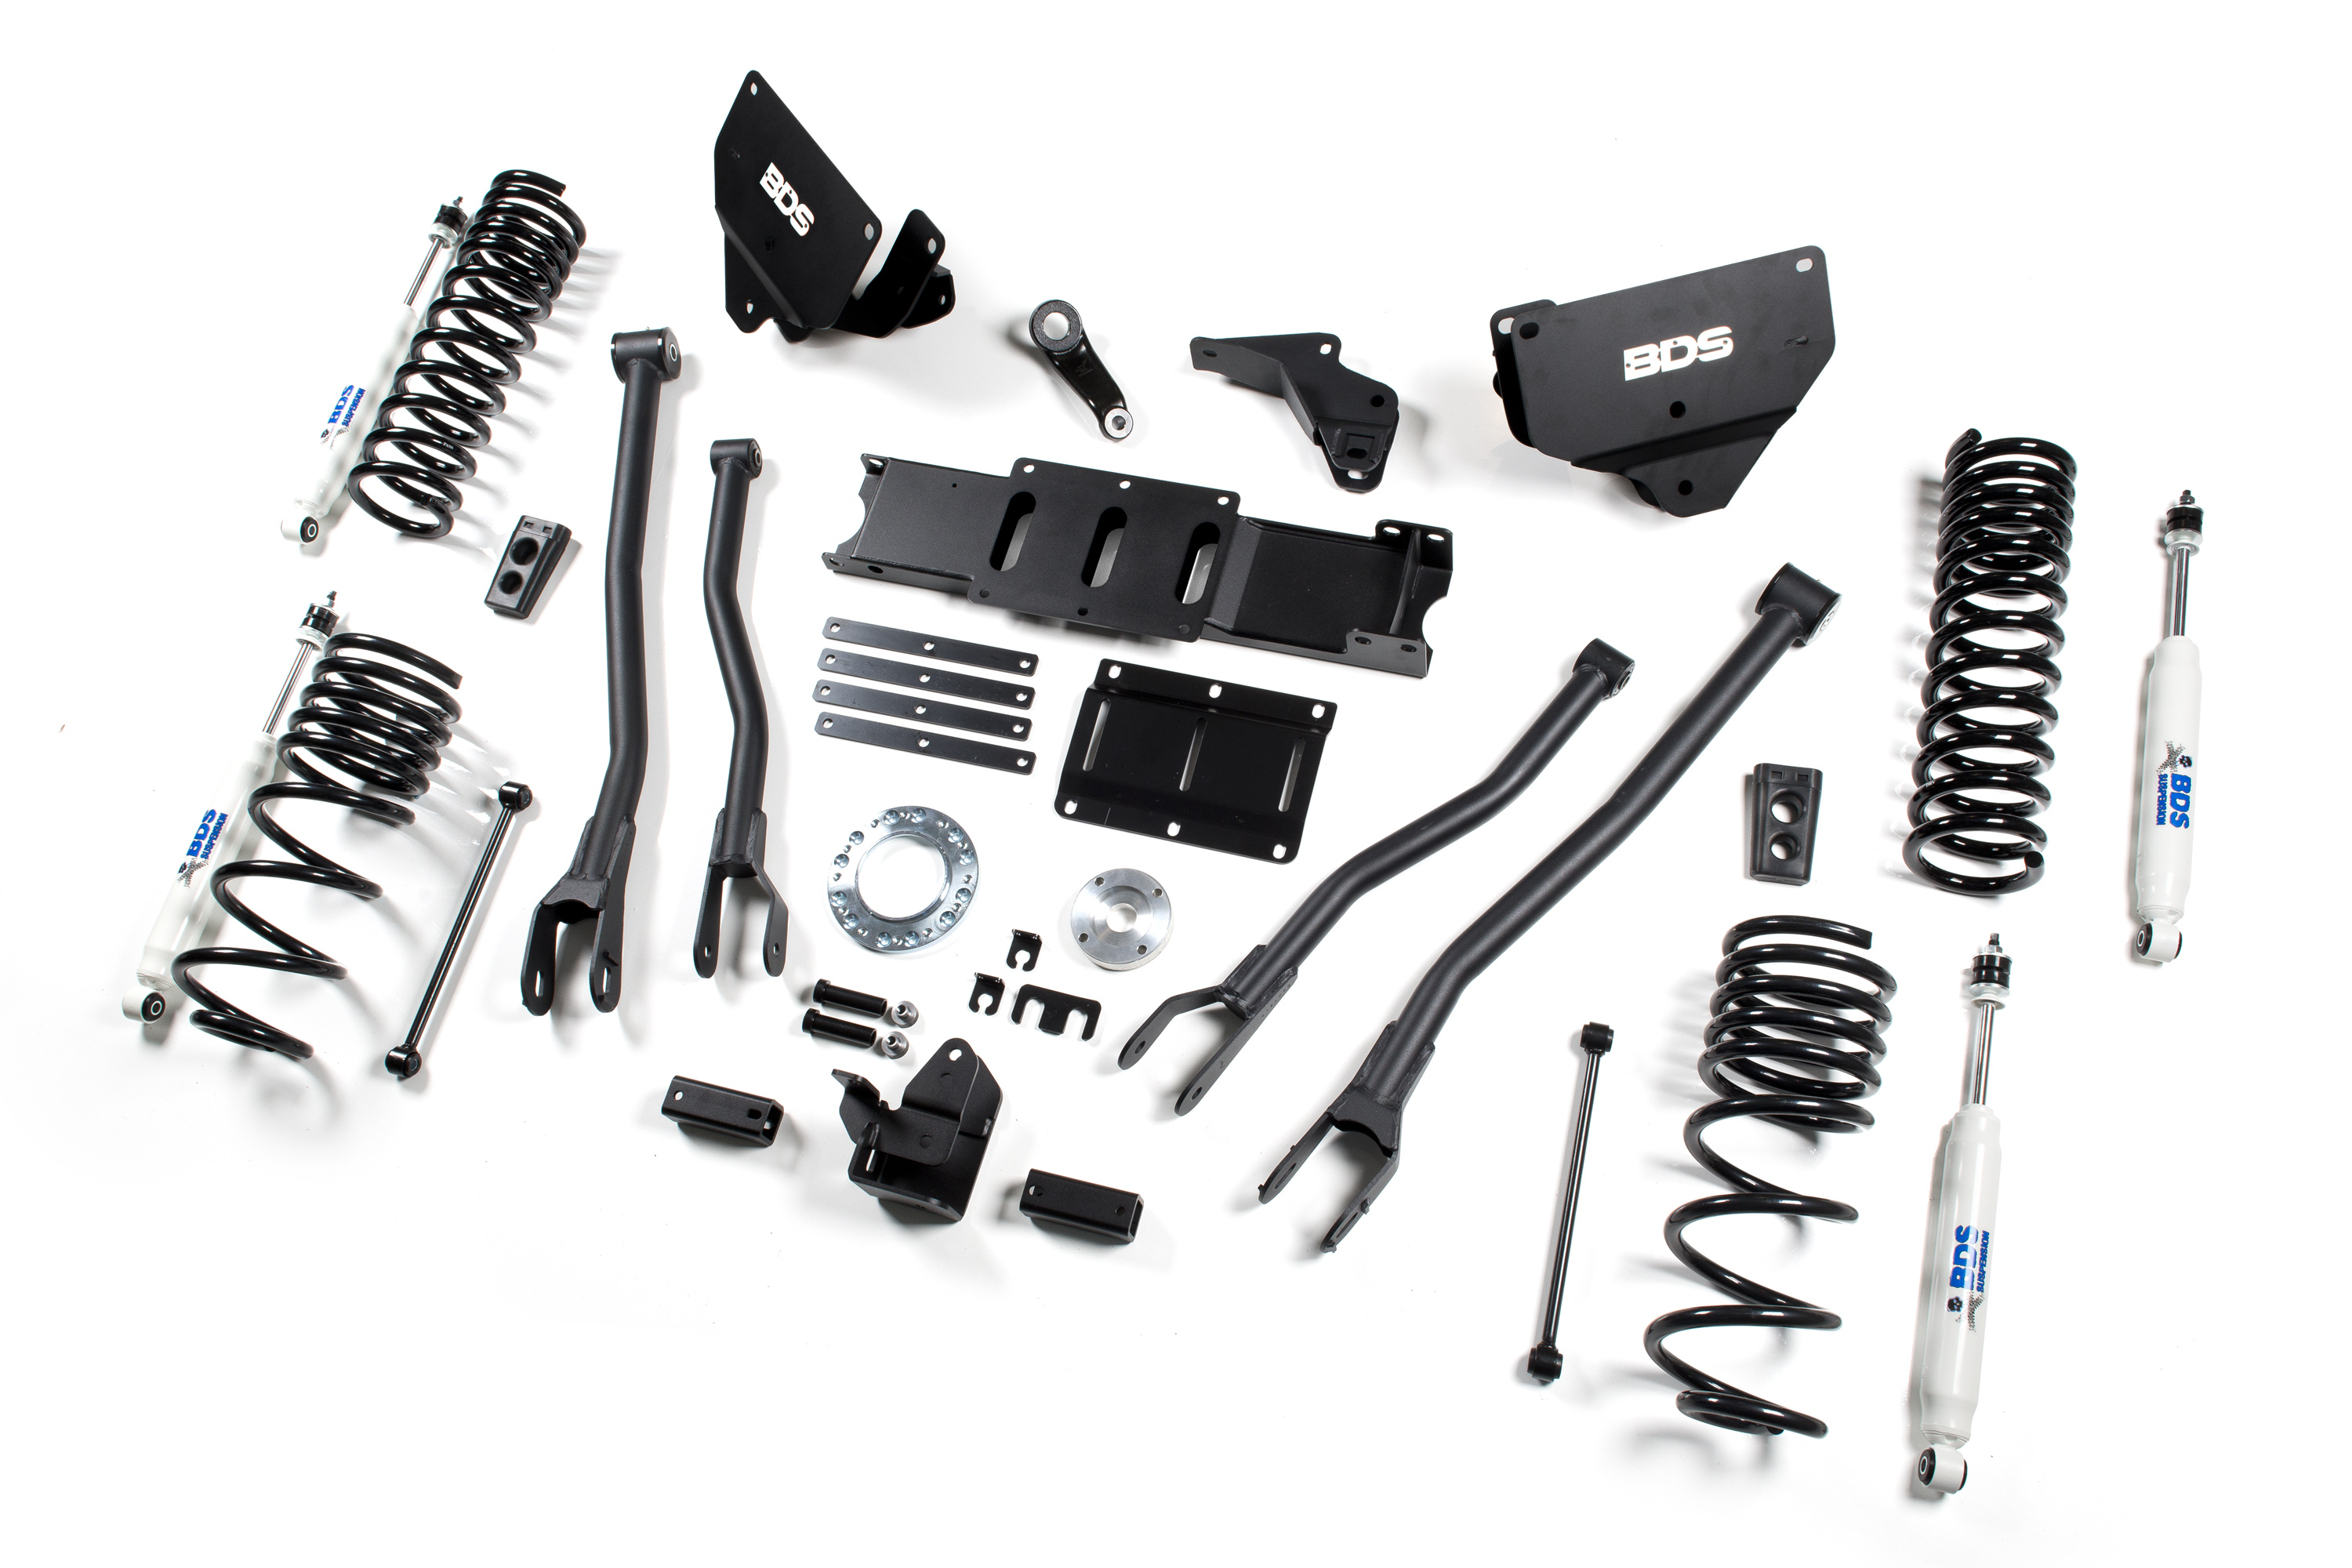 Bds Lift Kits Amp Accessories Now Available For Ram 2500 Trucks